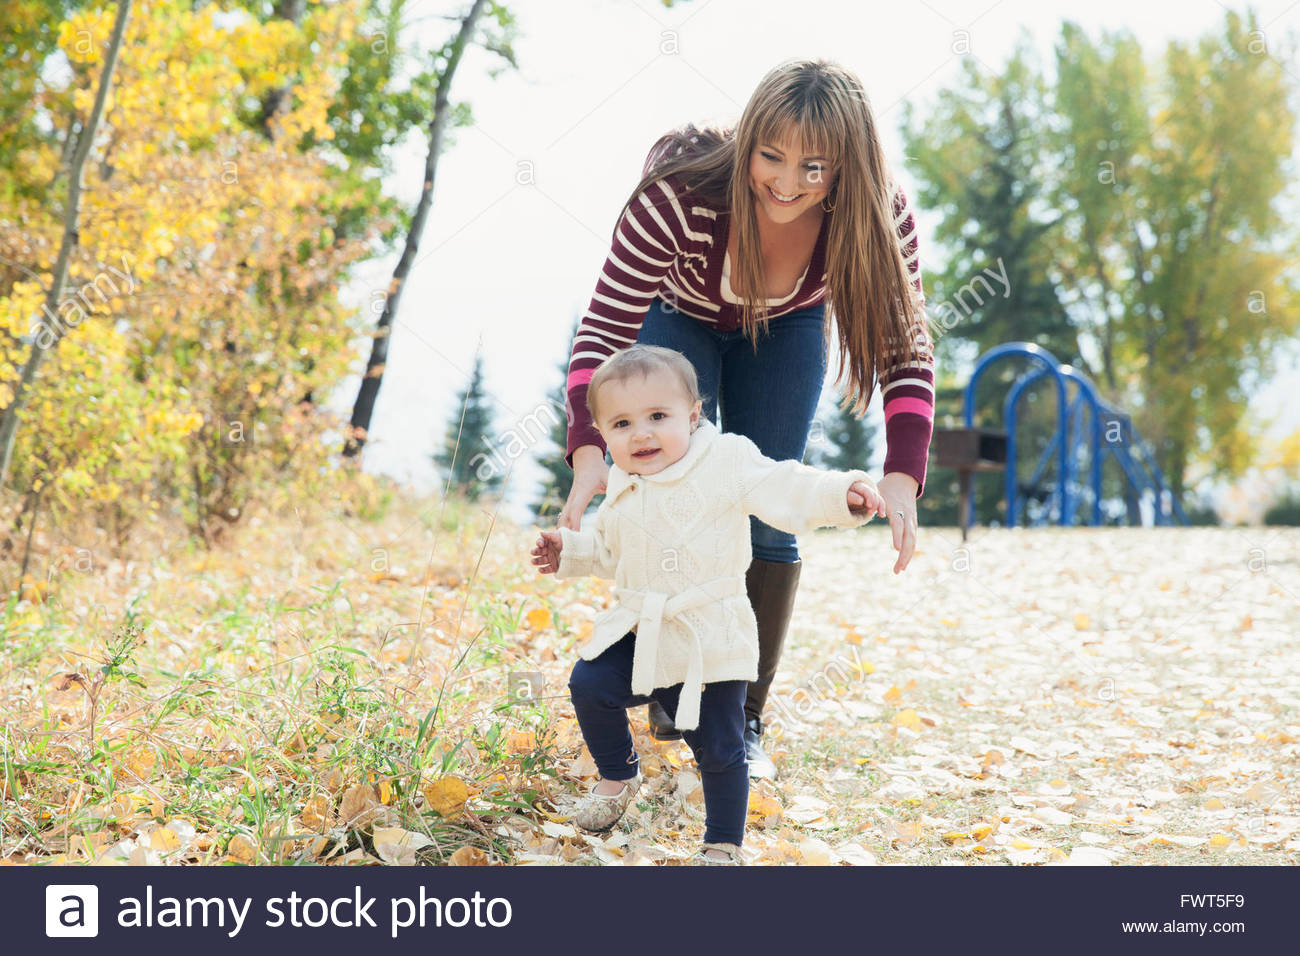 Mother helping baby girl to walk in park - Stock Image